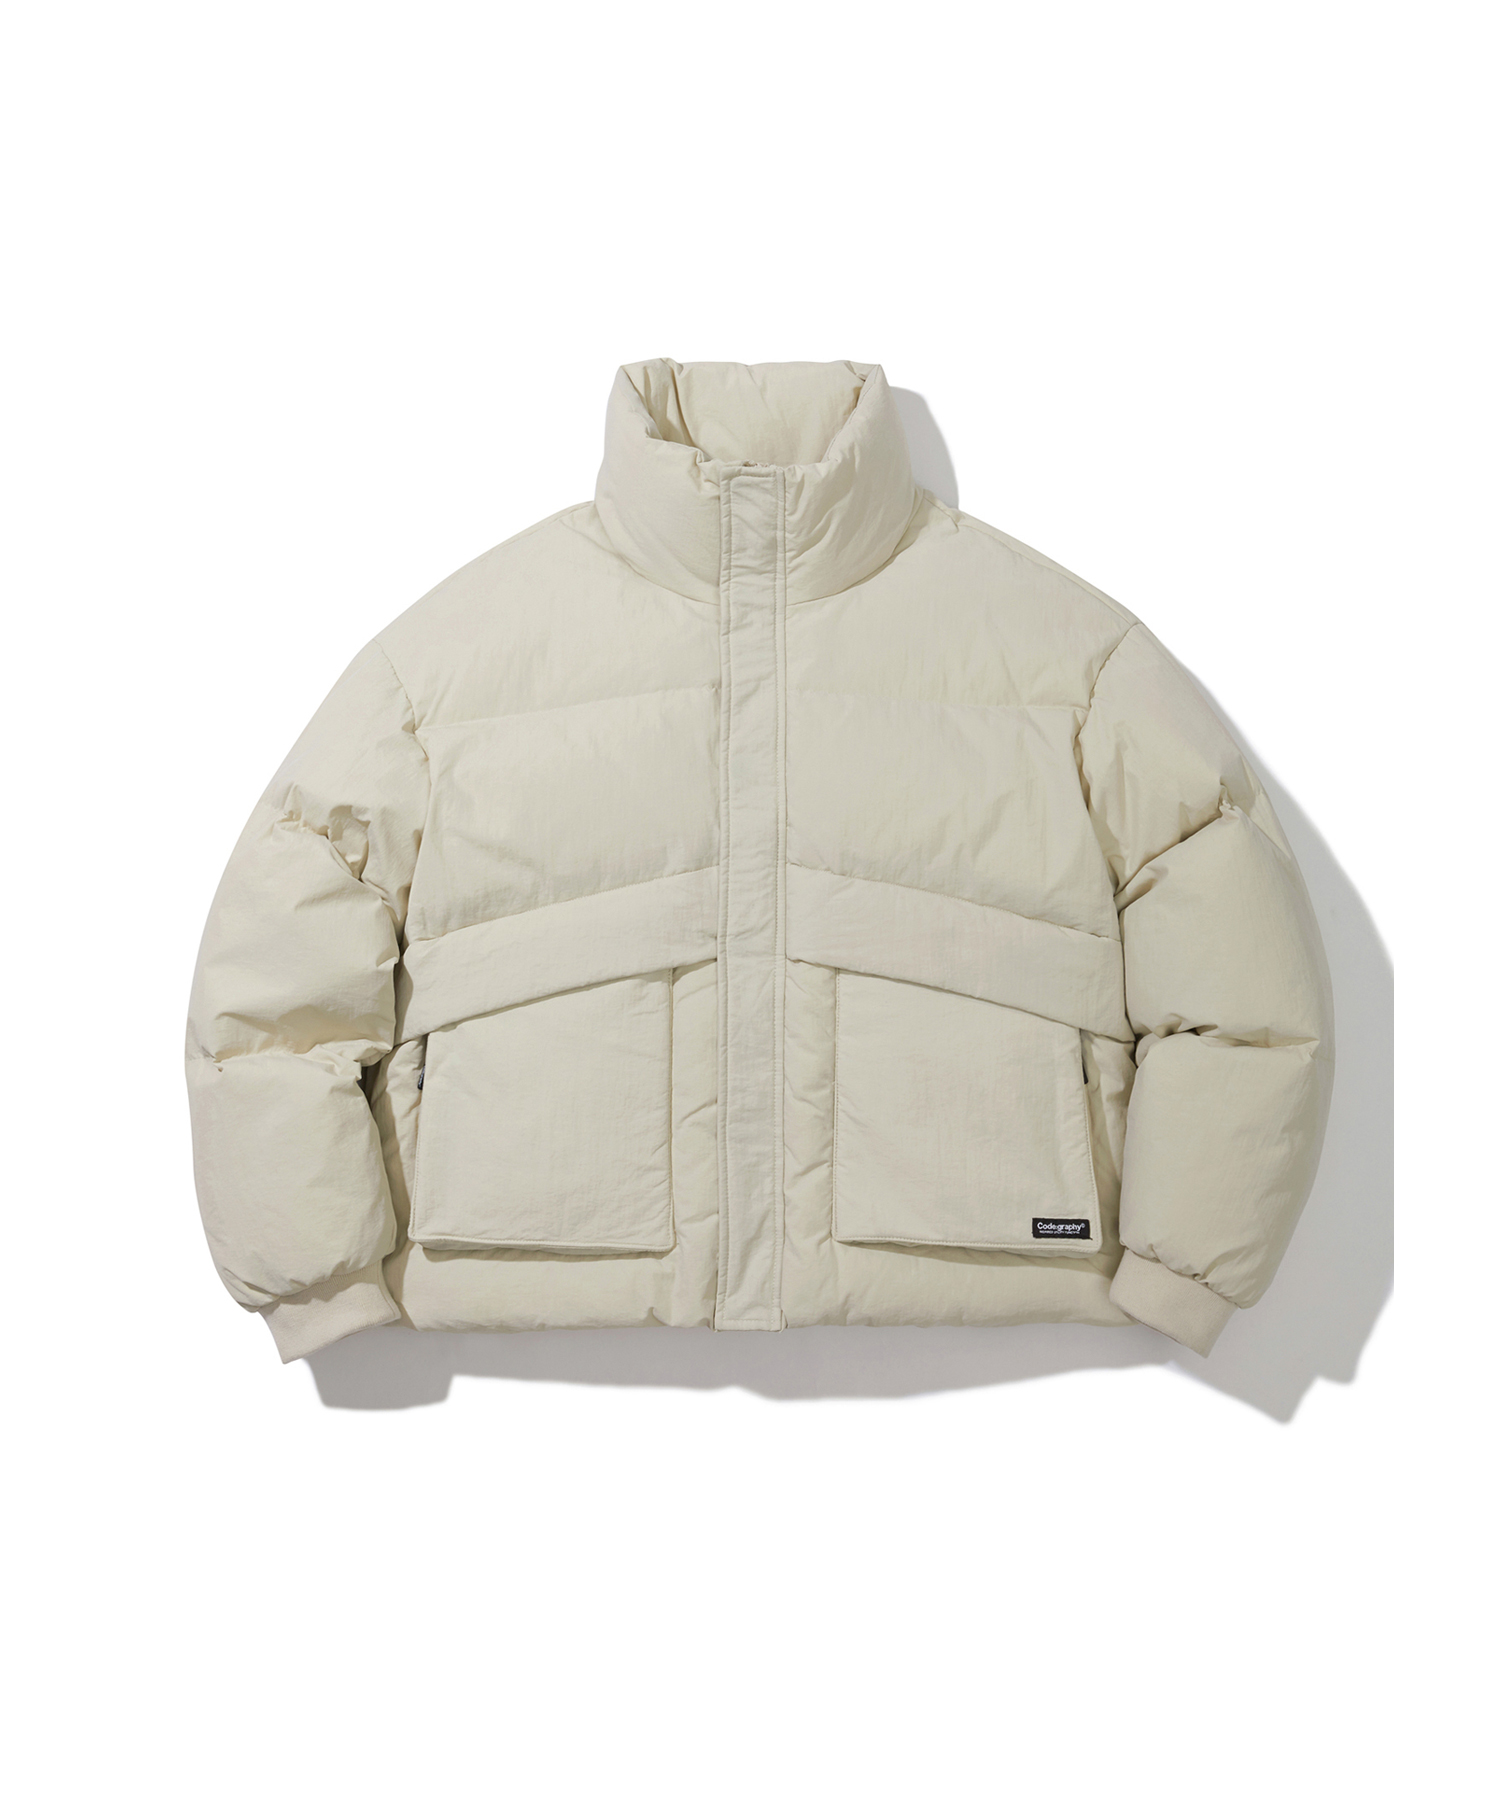 [Renewal]UTILITY DUCK DOWN SHORT PUFFA - BE